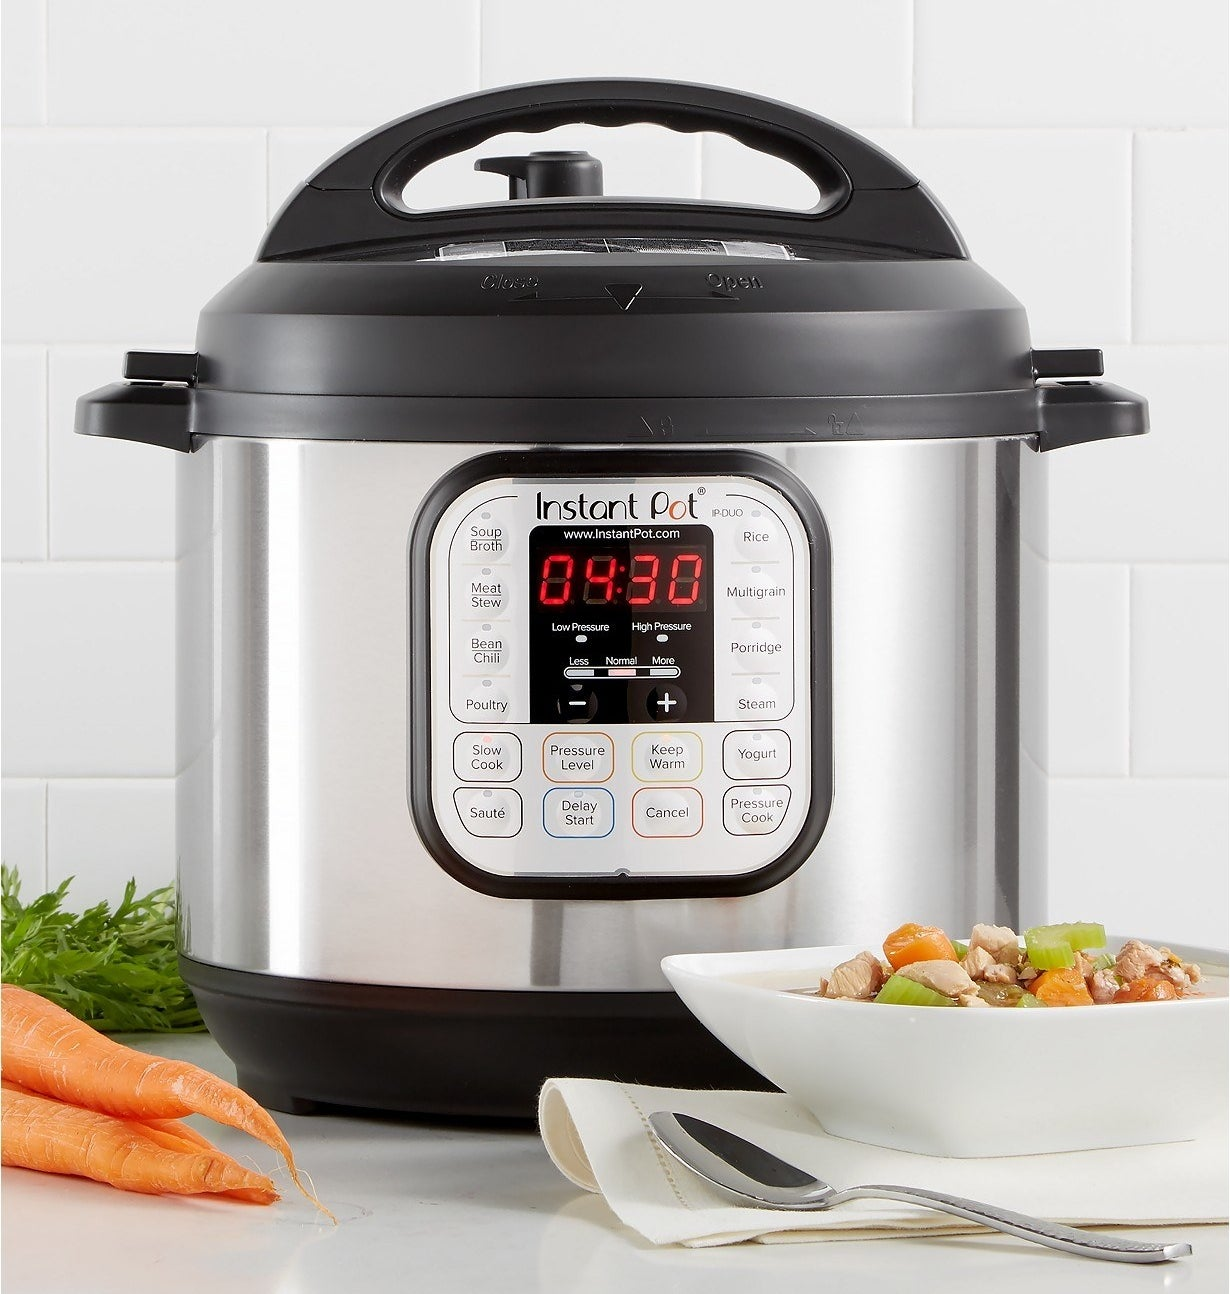 The Instant Pot, featuring a digital display and preset buttons